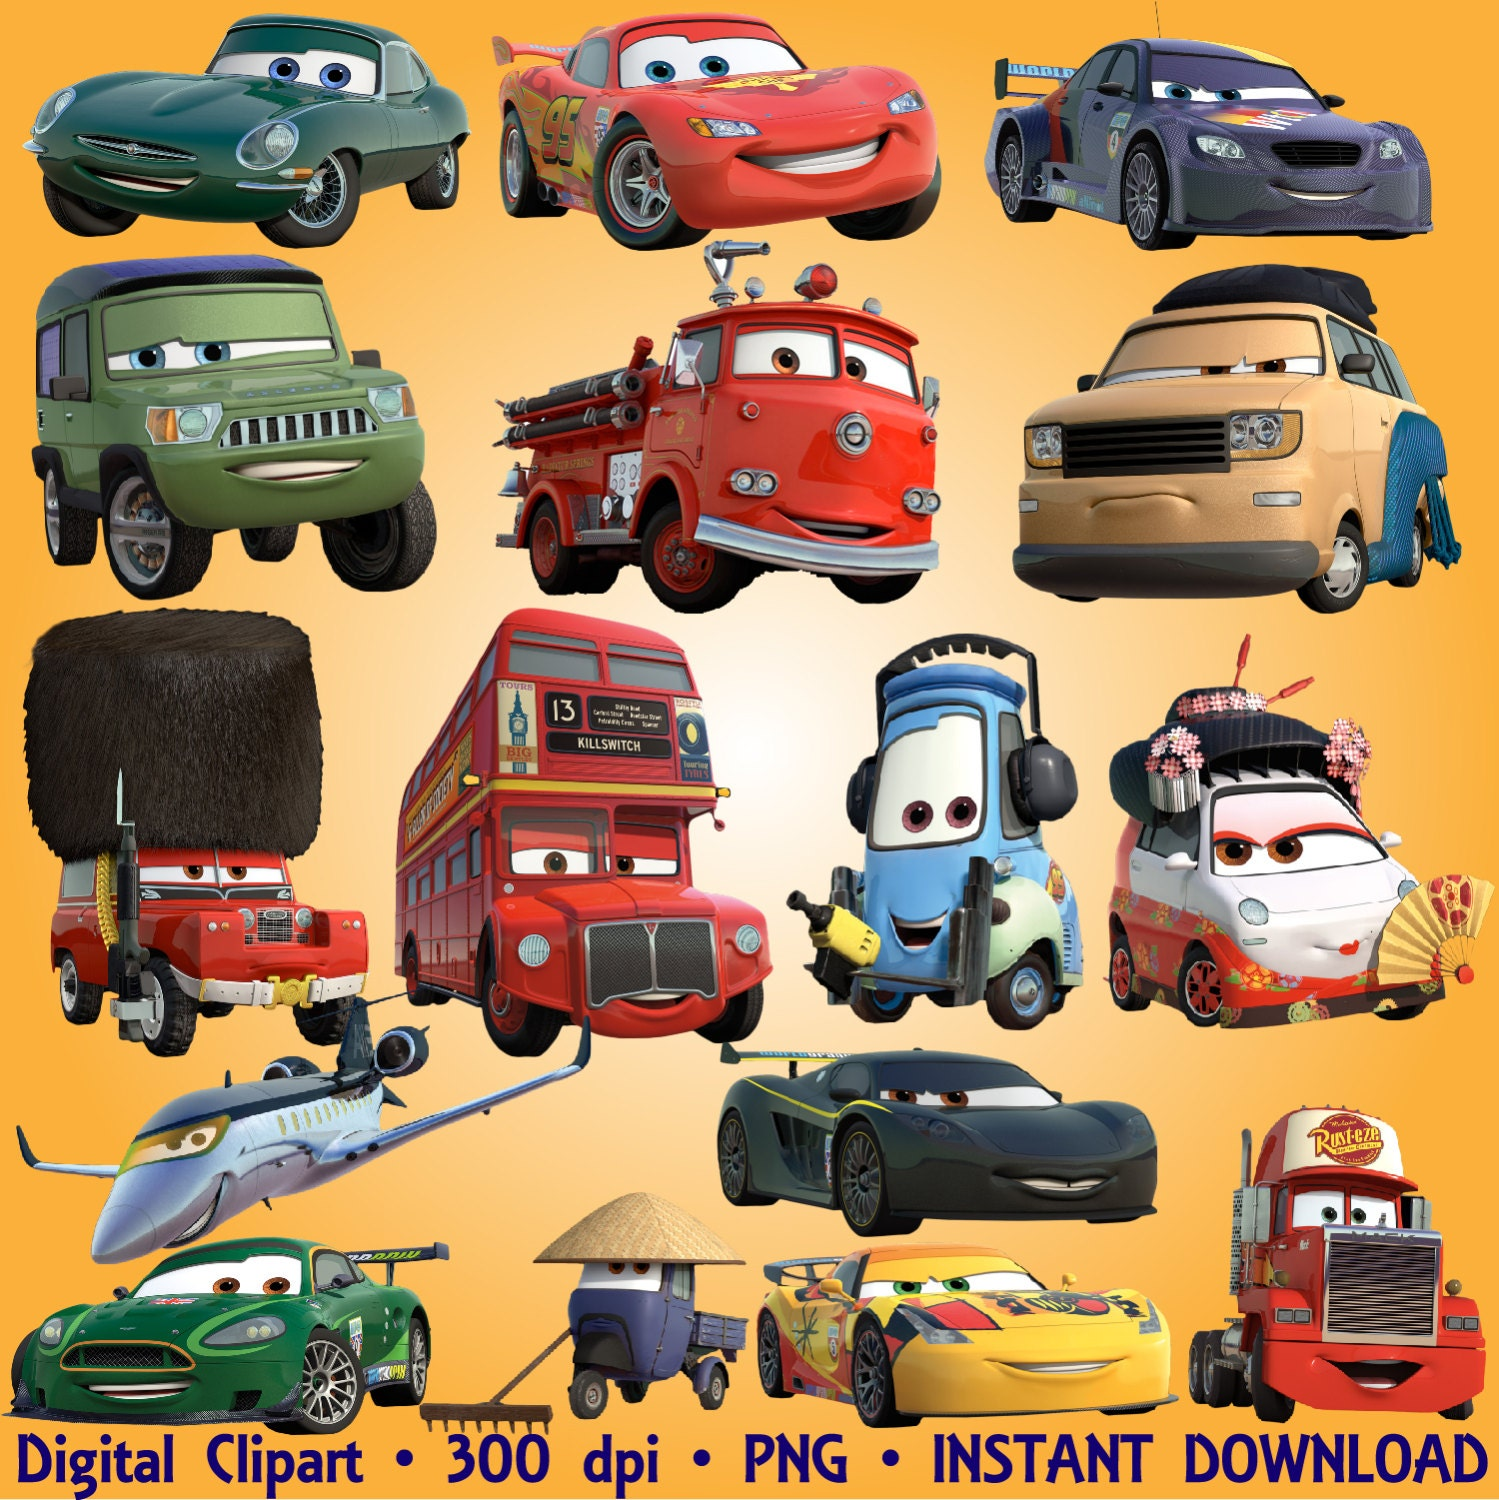 Cars clipart disney cartoon 56 png digital graphic disney cars 2 clip art scrapbooking - Image cars disney ...